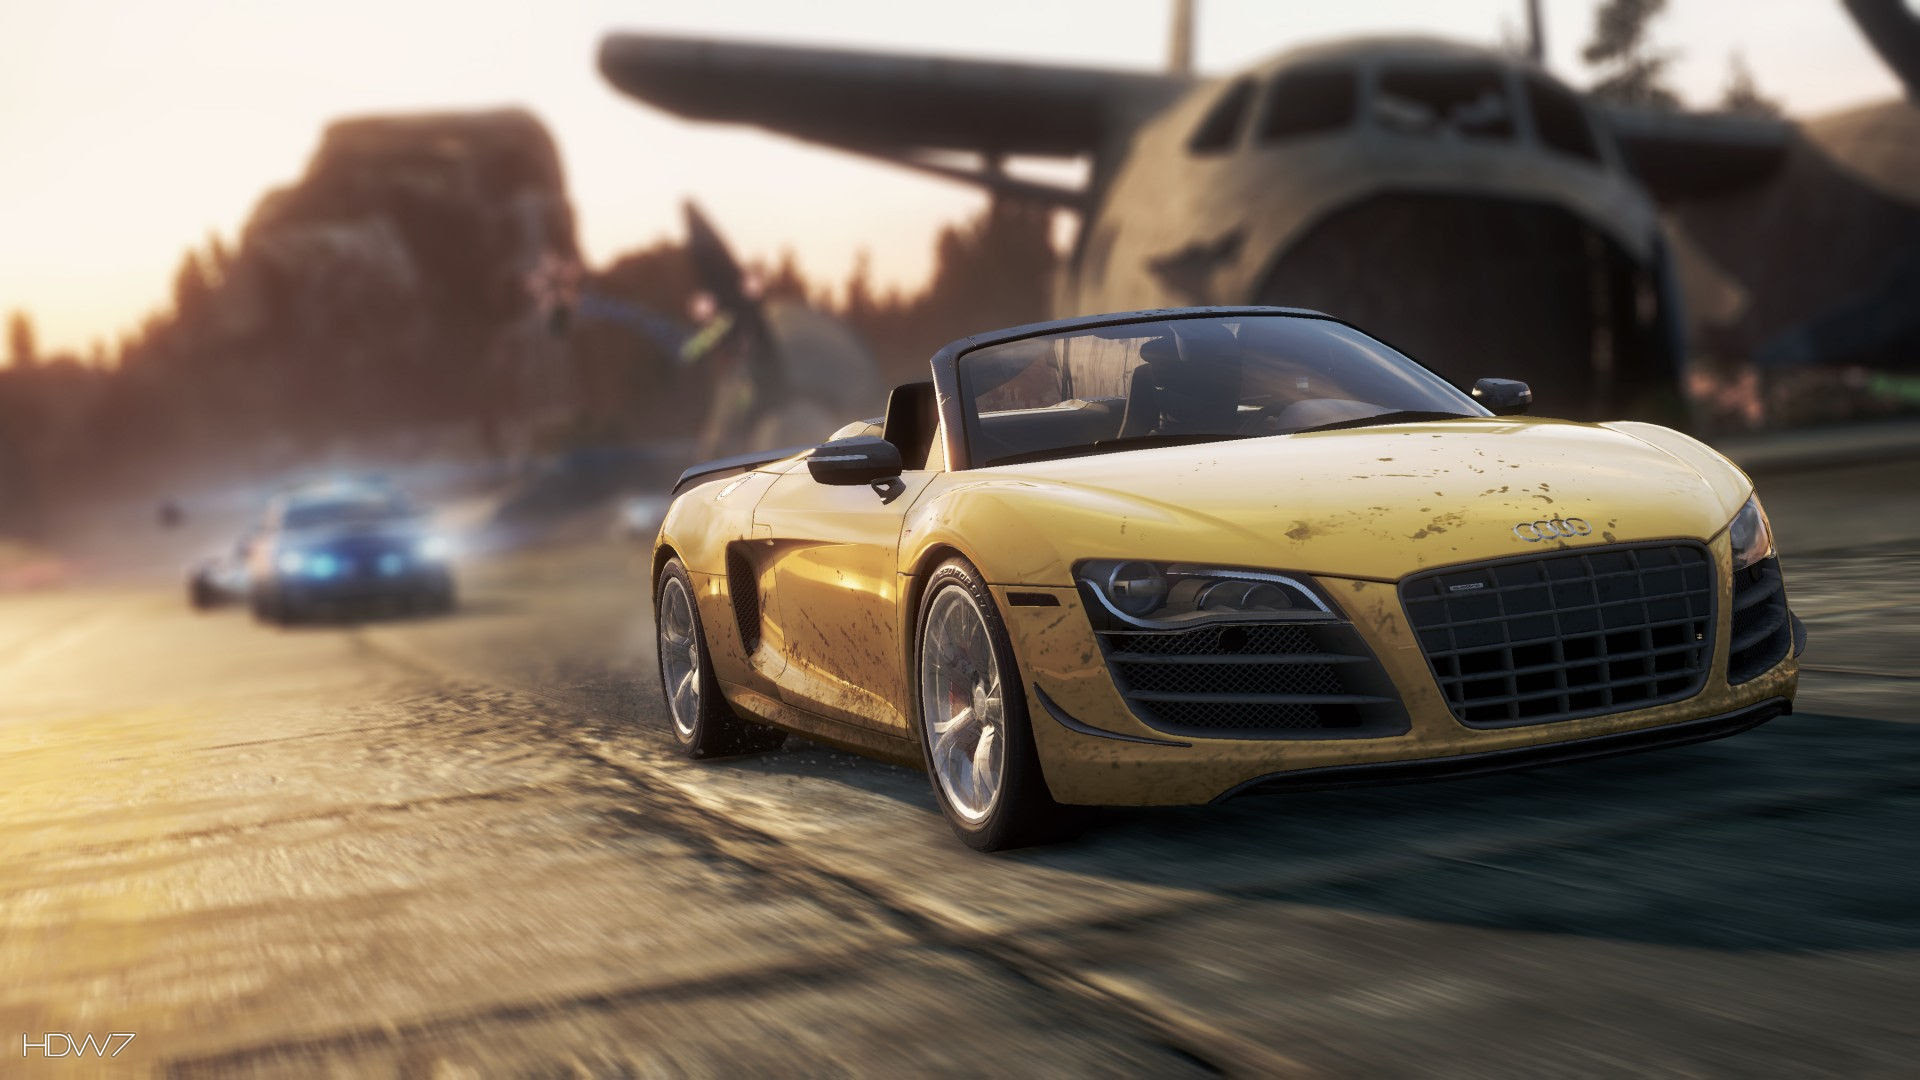 Need For Speed Most Wanted 2012 Audi R8 Gt Spyder Widescreen Hd